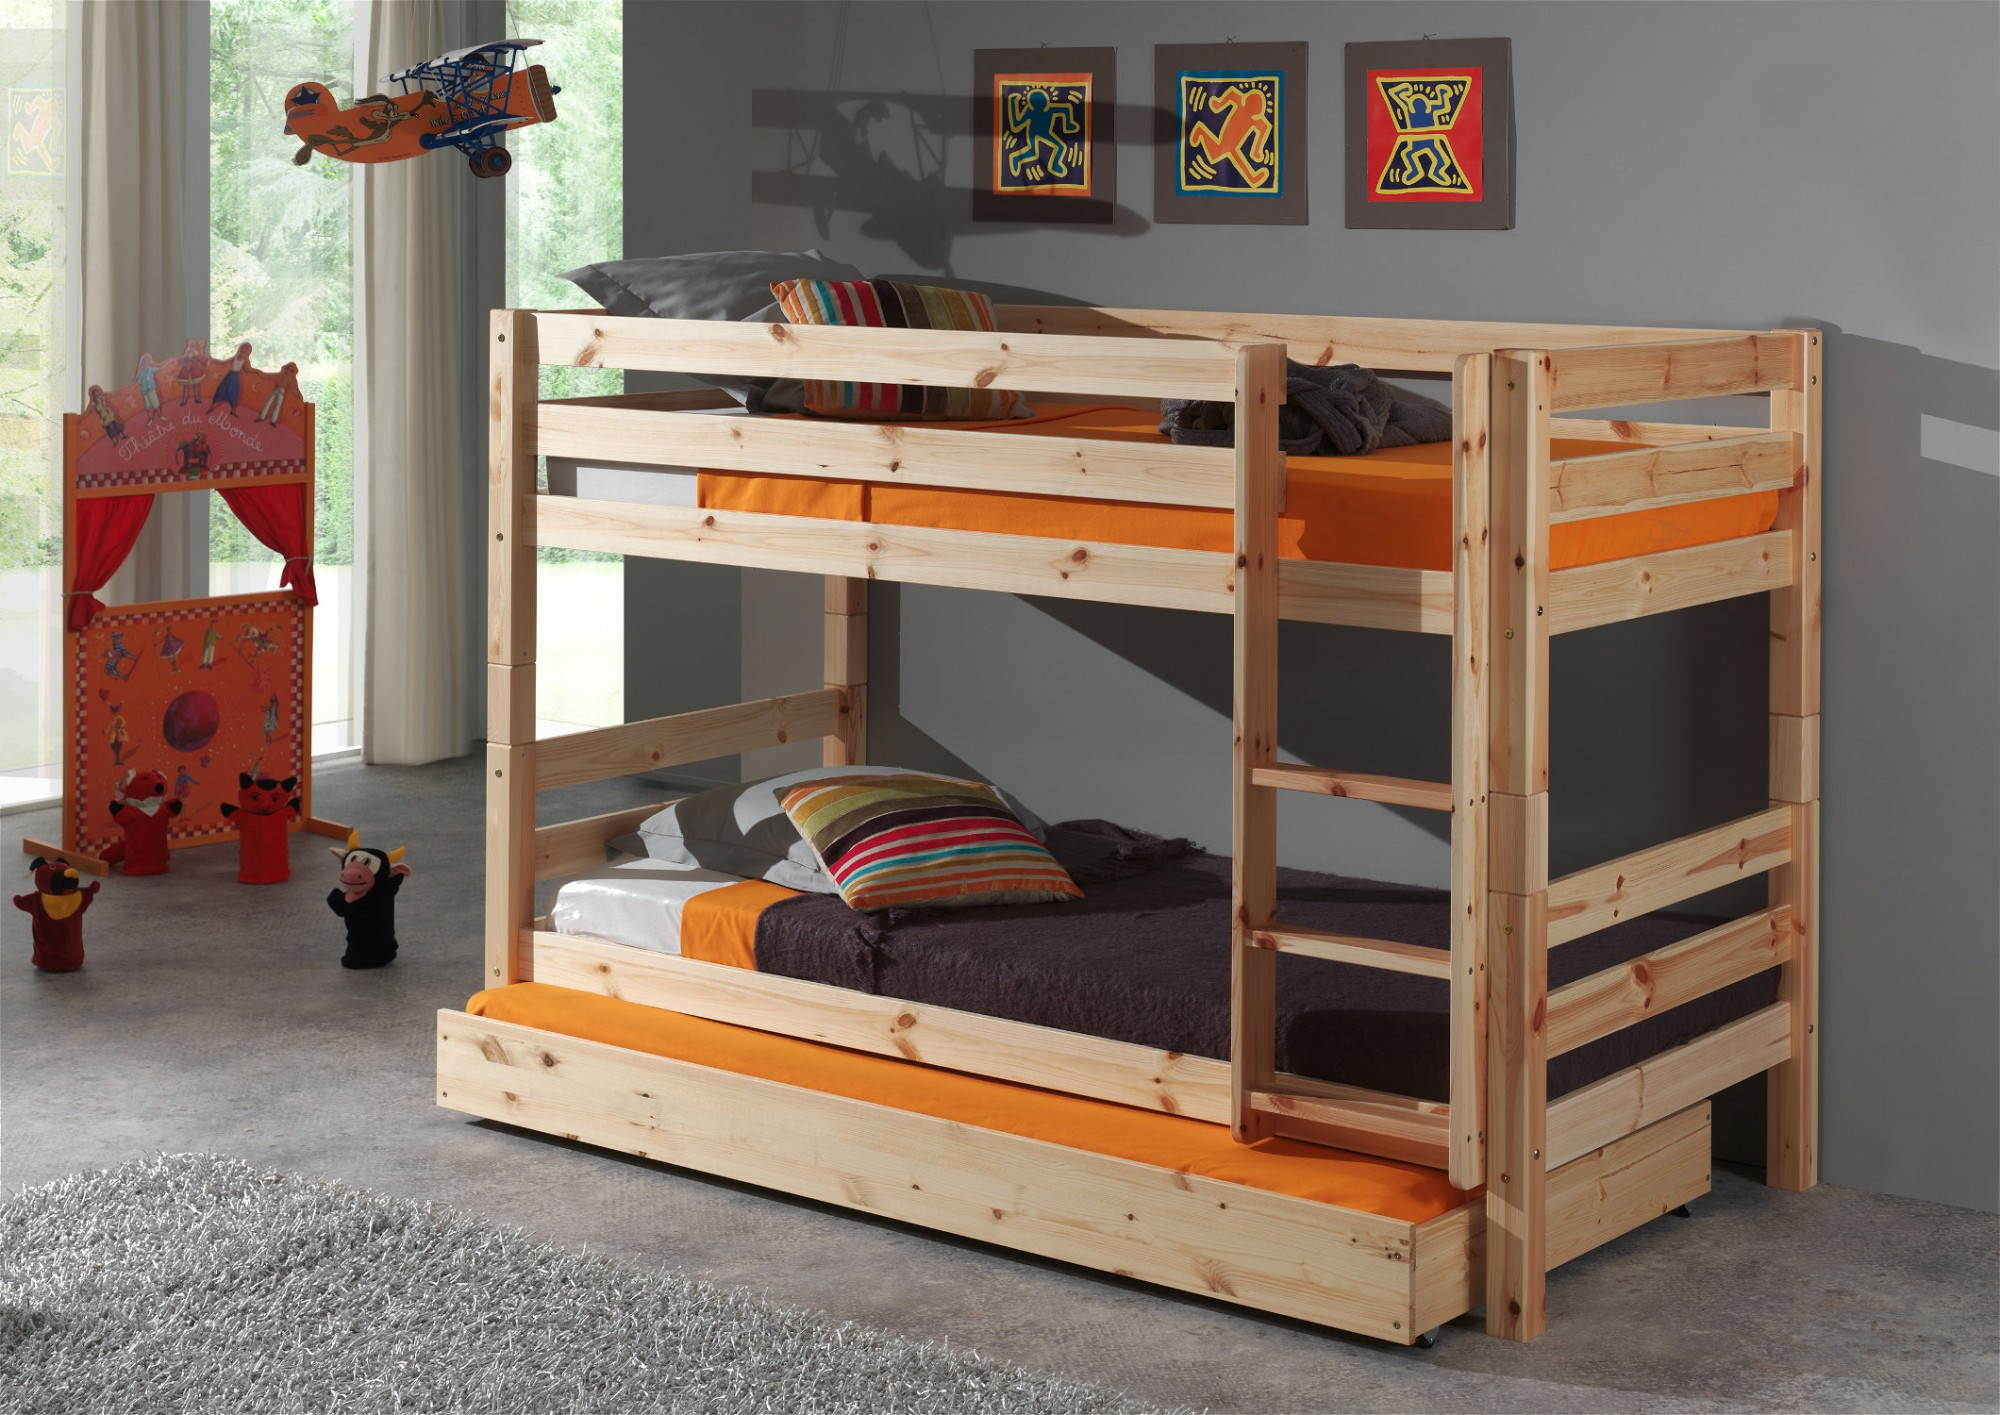 etagenbett pino mit bettschublade 2 liegefl chen 90 x. Black Bedroom Furniture Sets. Home Design Ideas